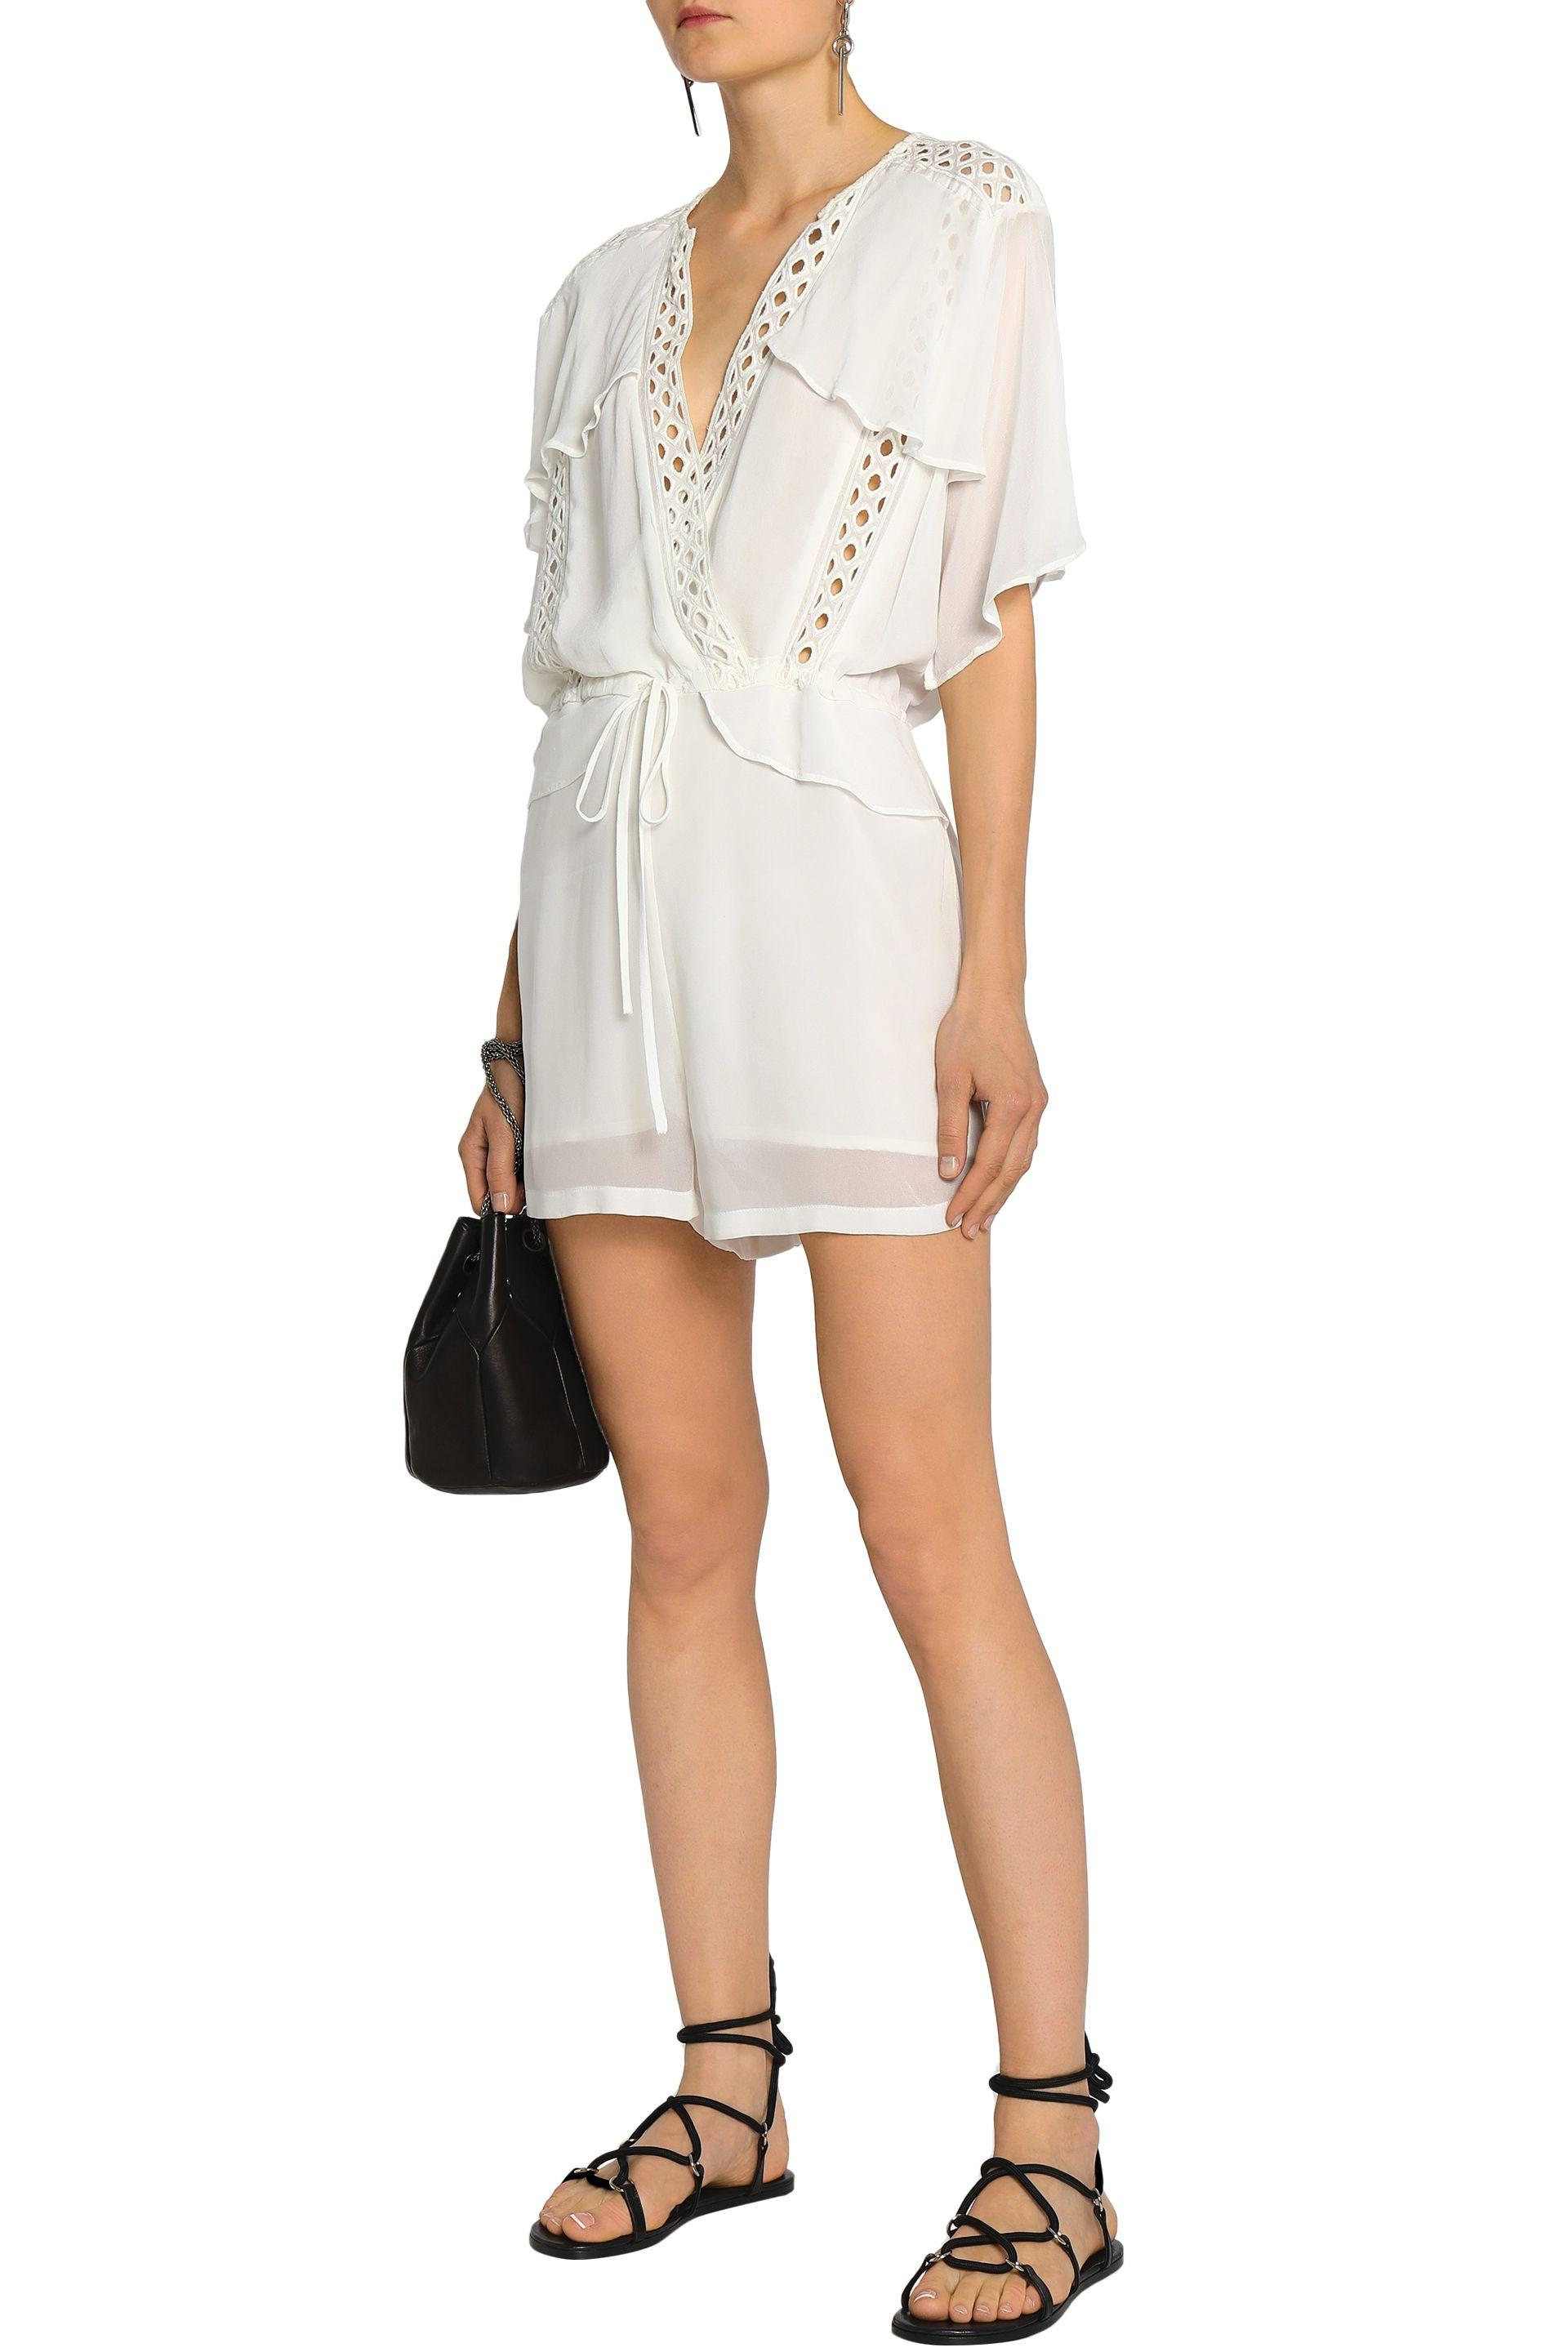 5ec2664f2684 IRO - Woman Embroidered Georgette Jumpsuit White - Lyst. View fullscreen